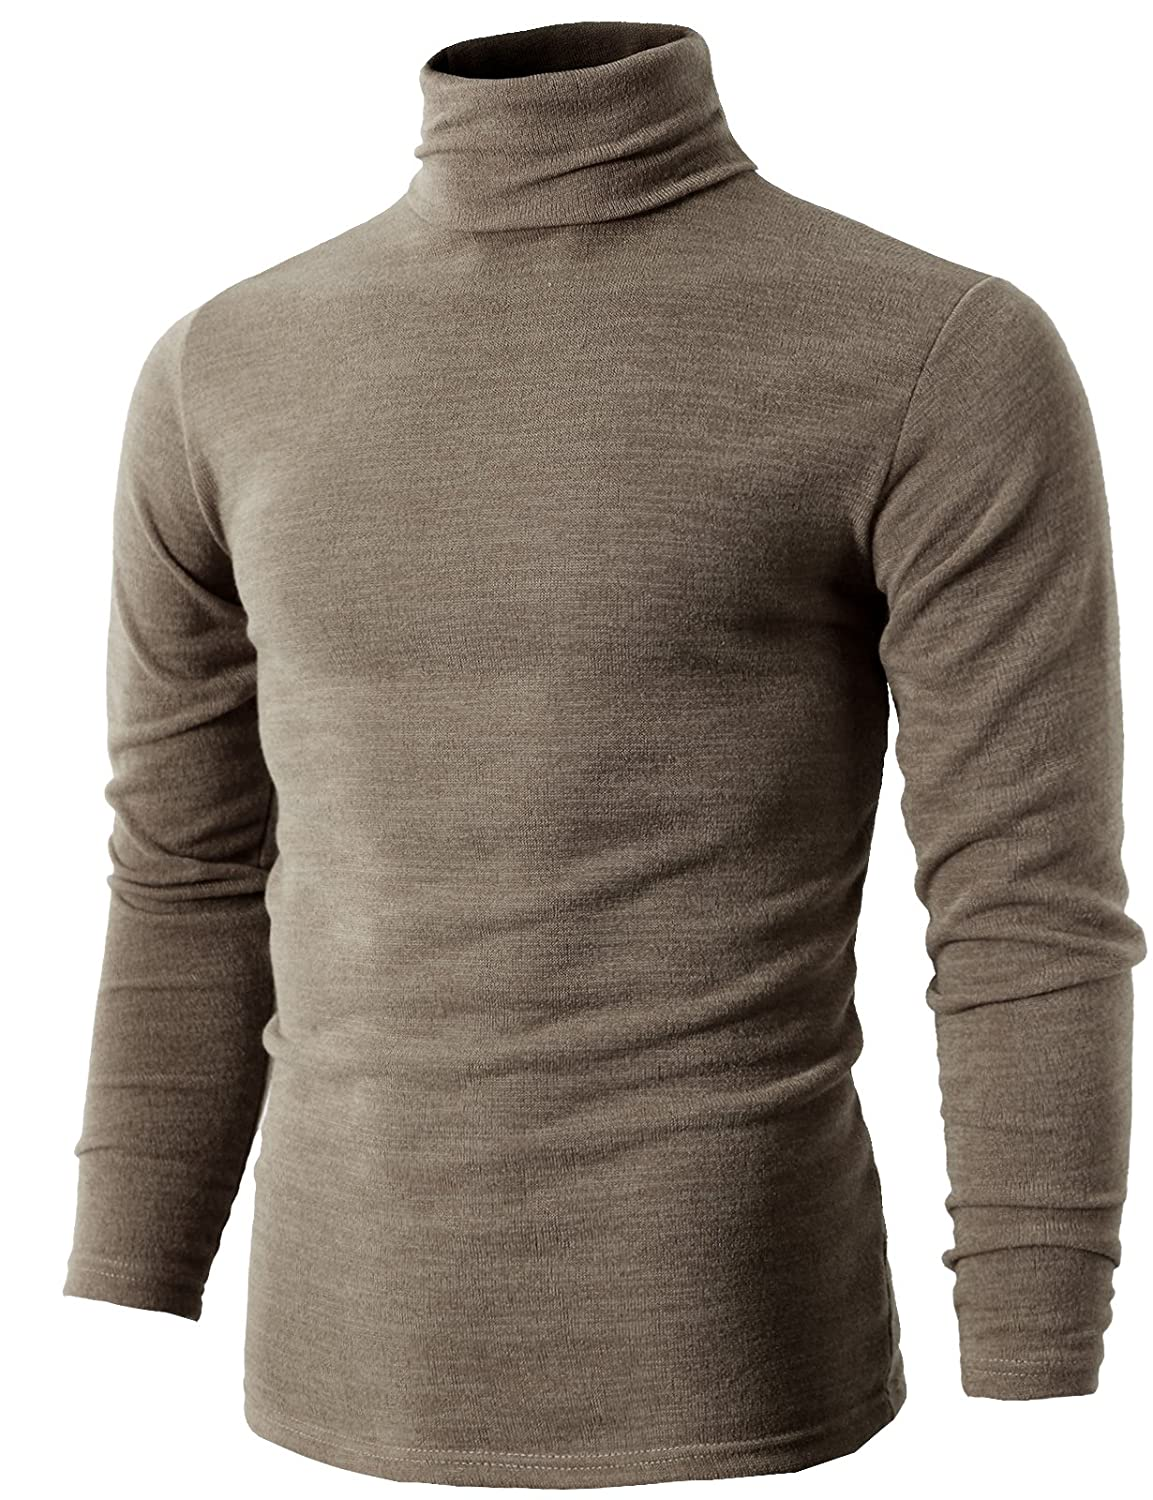 Doublju Mens Basic Long Sleeve Cotton Knit Turtleneck Sweater at ...